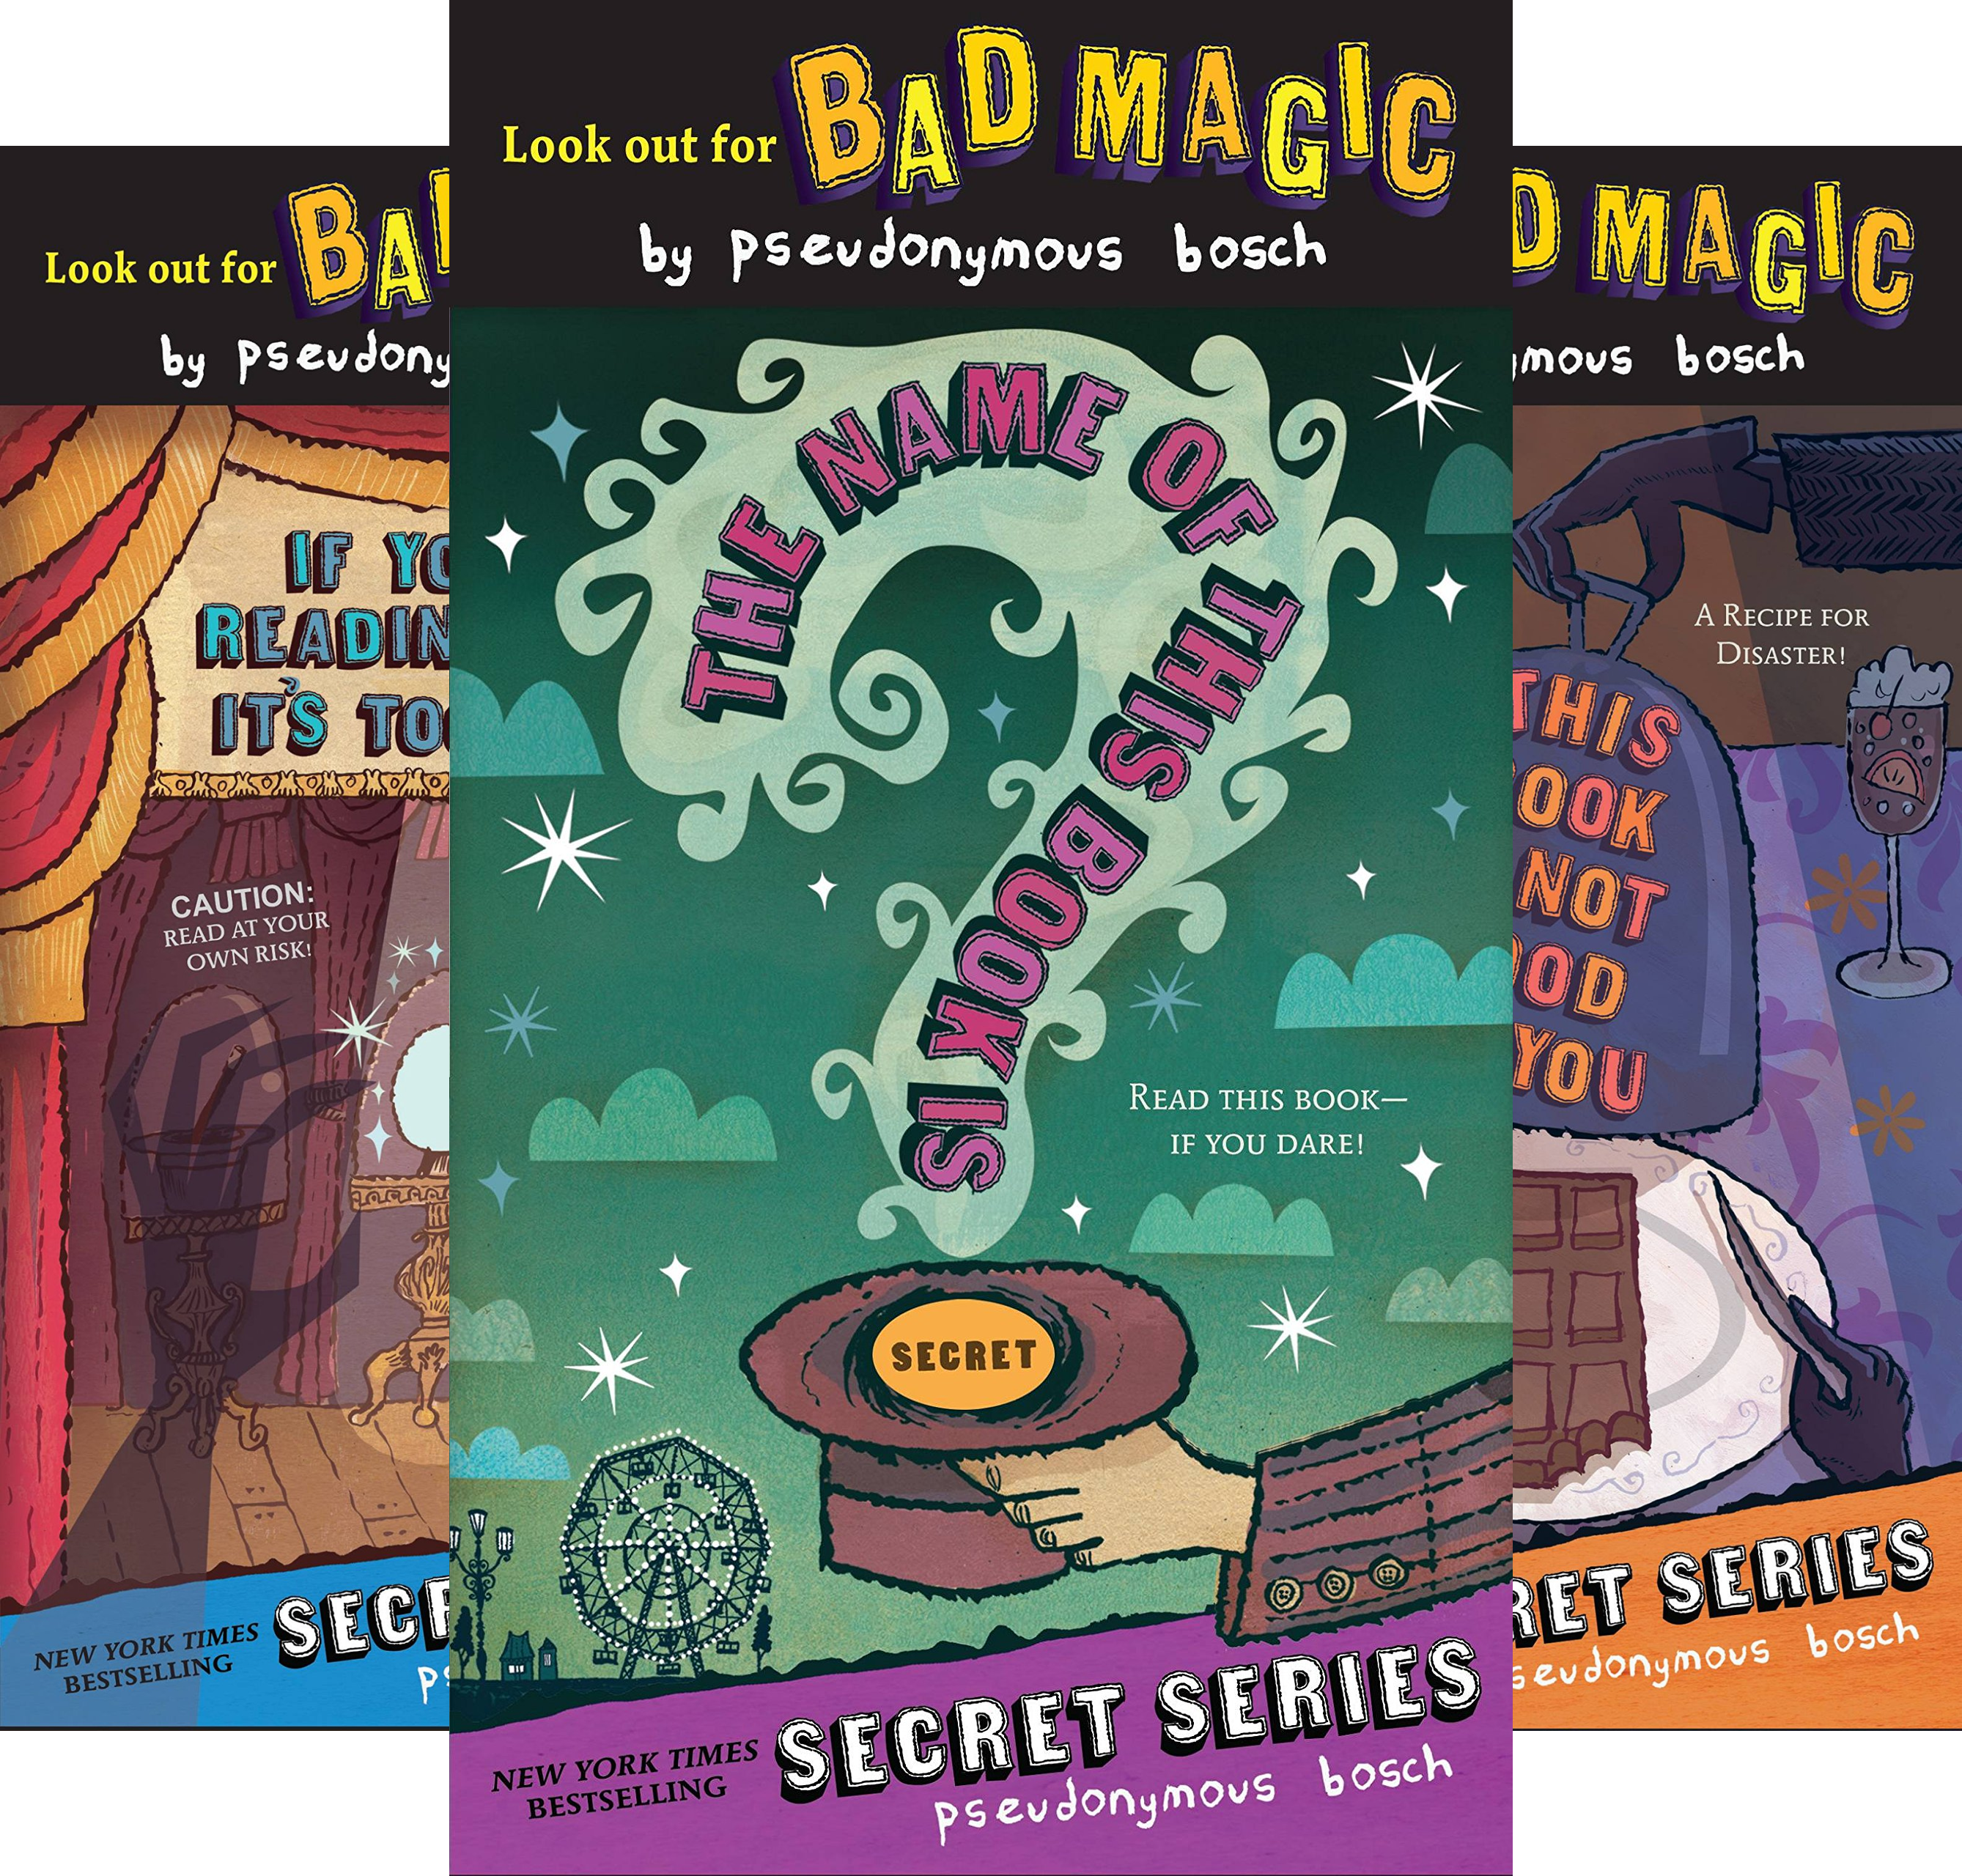 The Secret Series (5 Book Series) (Pseudonymous Bosch compare prices)